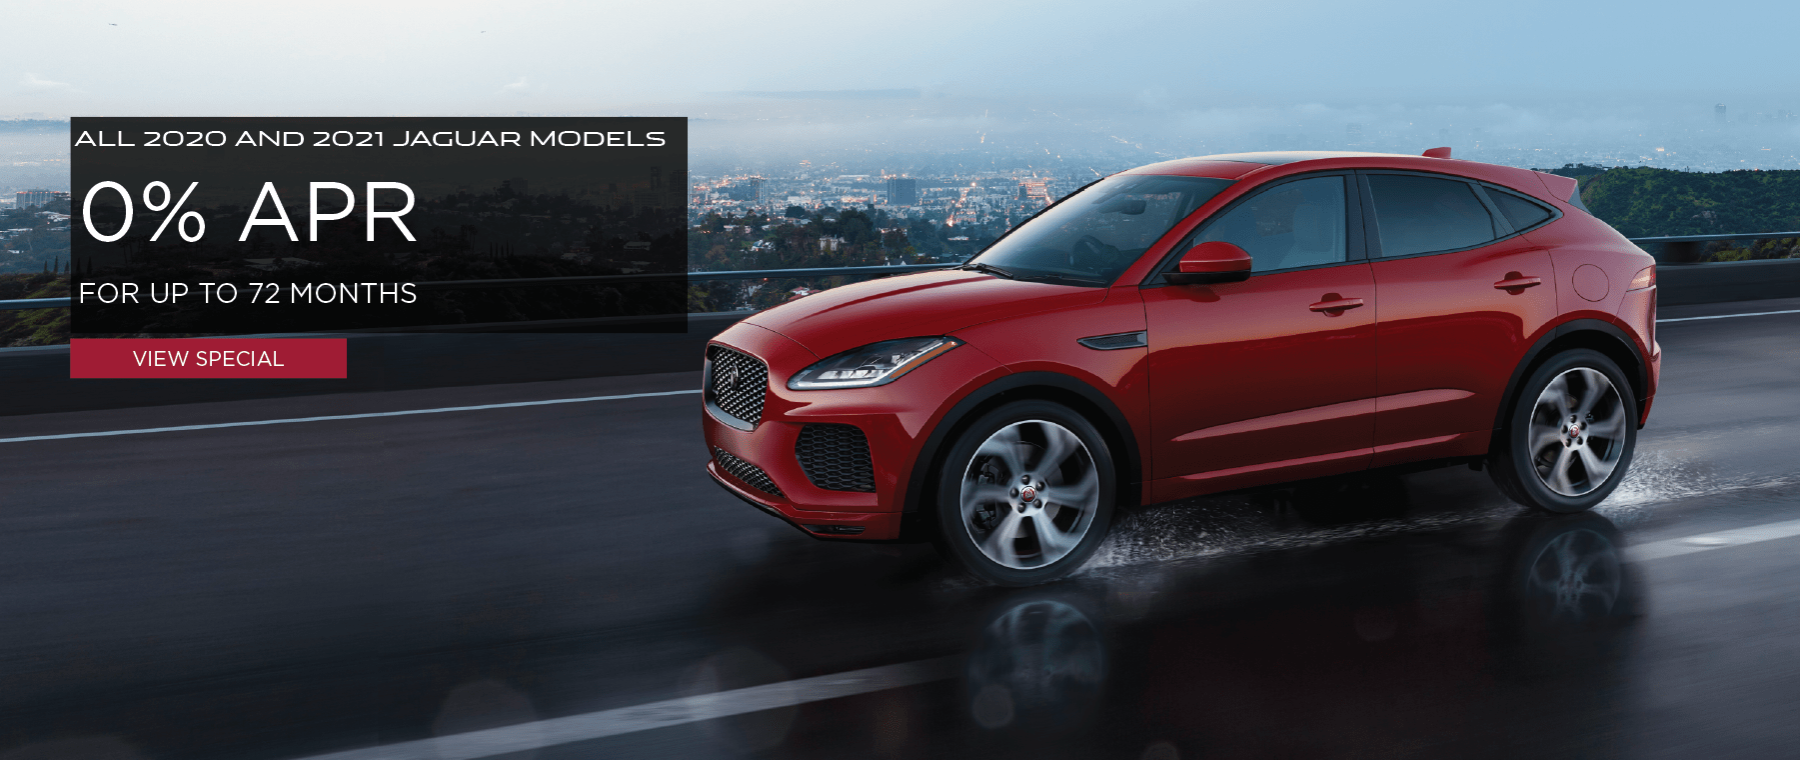 ALL 2020 AND 2021 JAGUAR MODELS. 0% APR FOR UP TO 72 MONTHS. VIEW SPECIAL. RED JAGUAR E-PACE DRIVING DOWN ROAD DURING RAIN STORM.